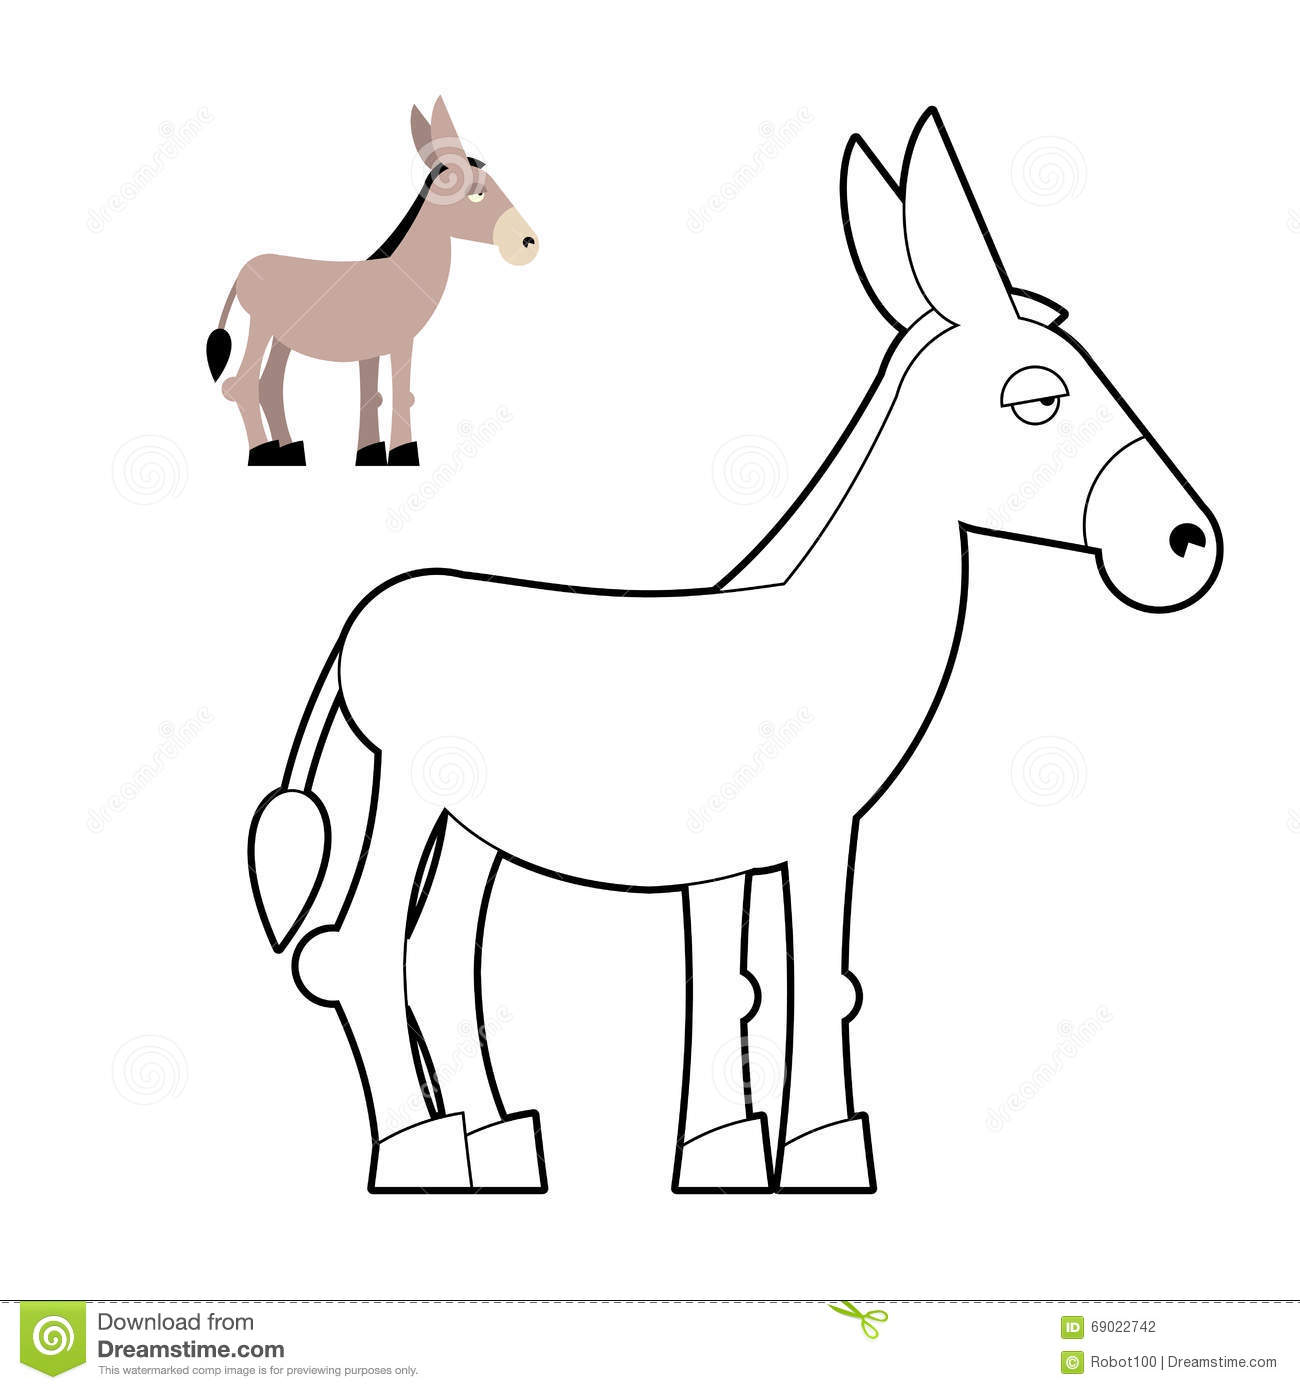 Letter d coloring pages for toddlers - Donkey Coloring Book Circuit Animal Childrens Coloring Book Wi Stock Photography